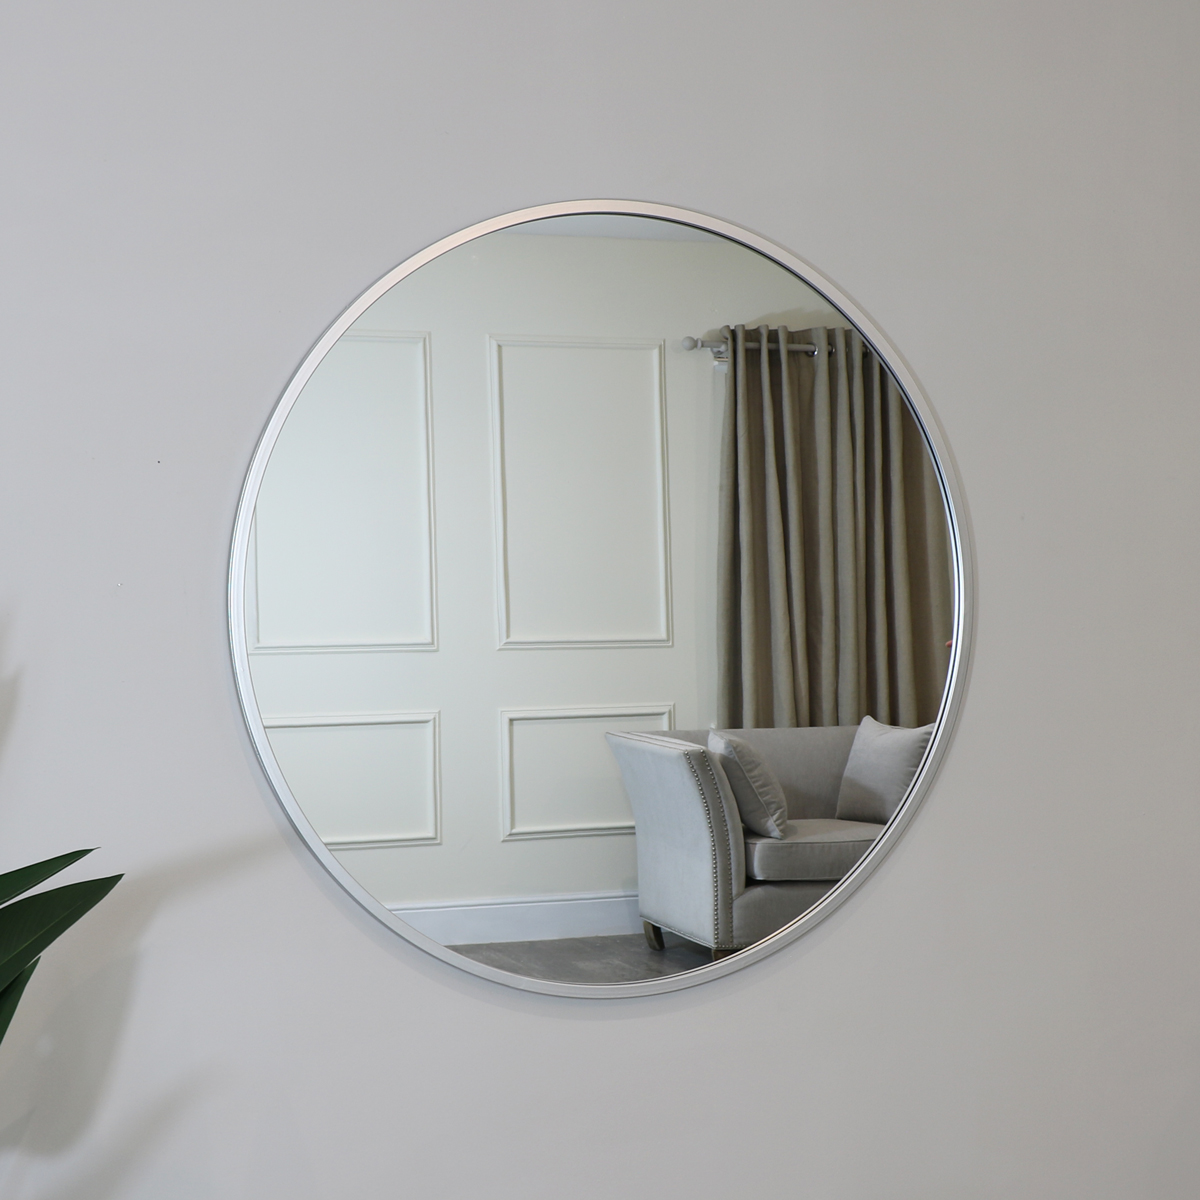 Extra Large Round Silver Wall Mirror 120cm X 120cm